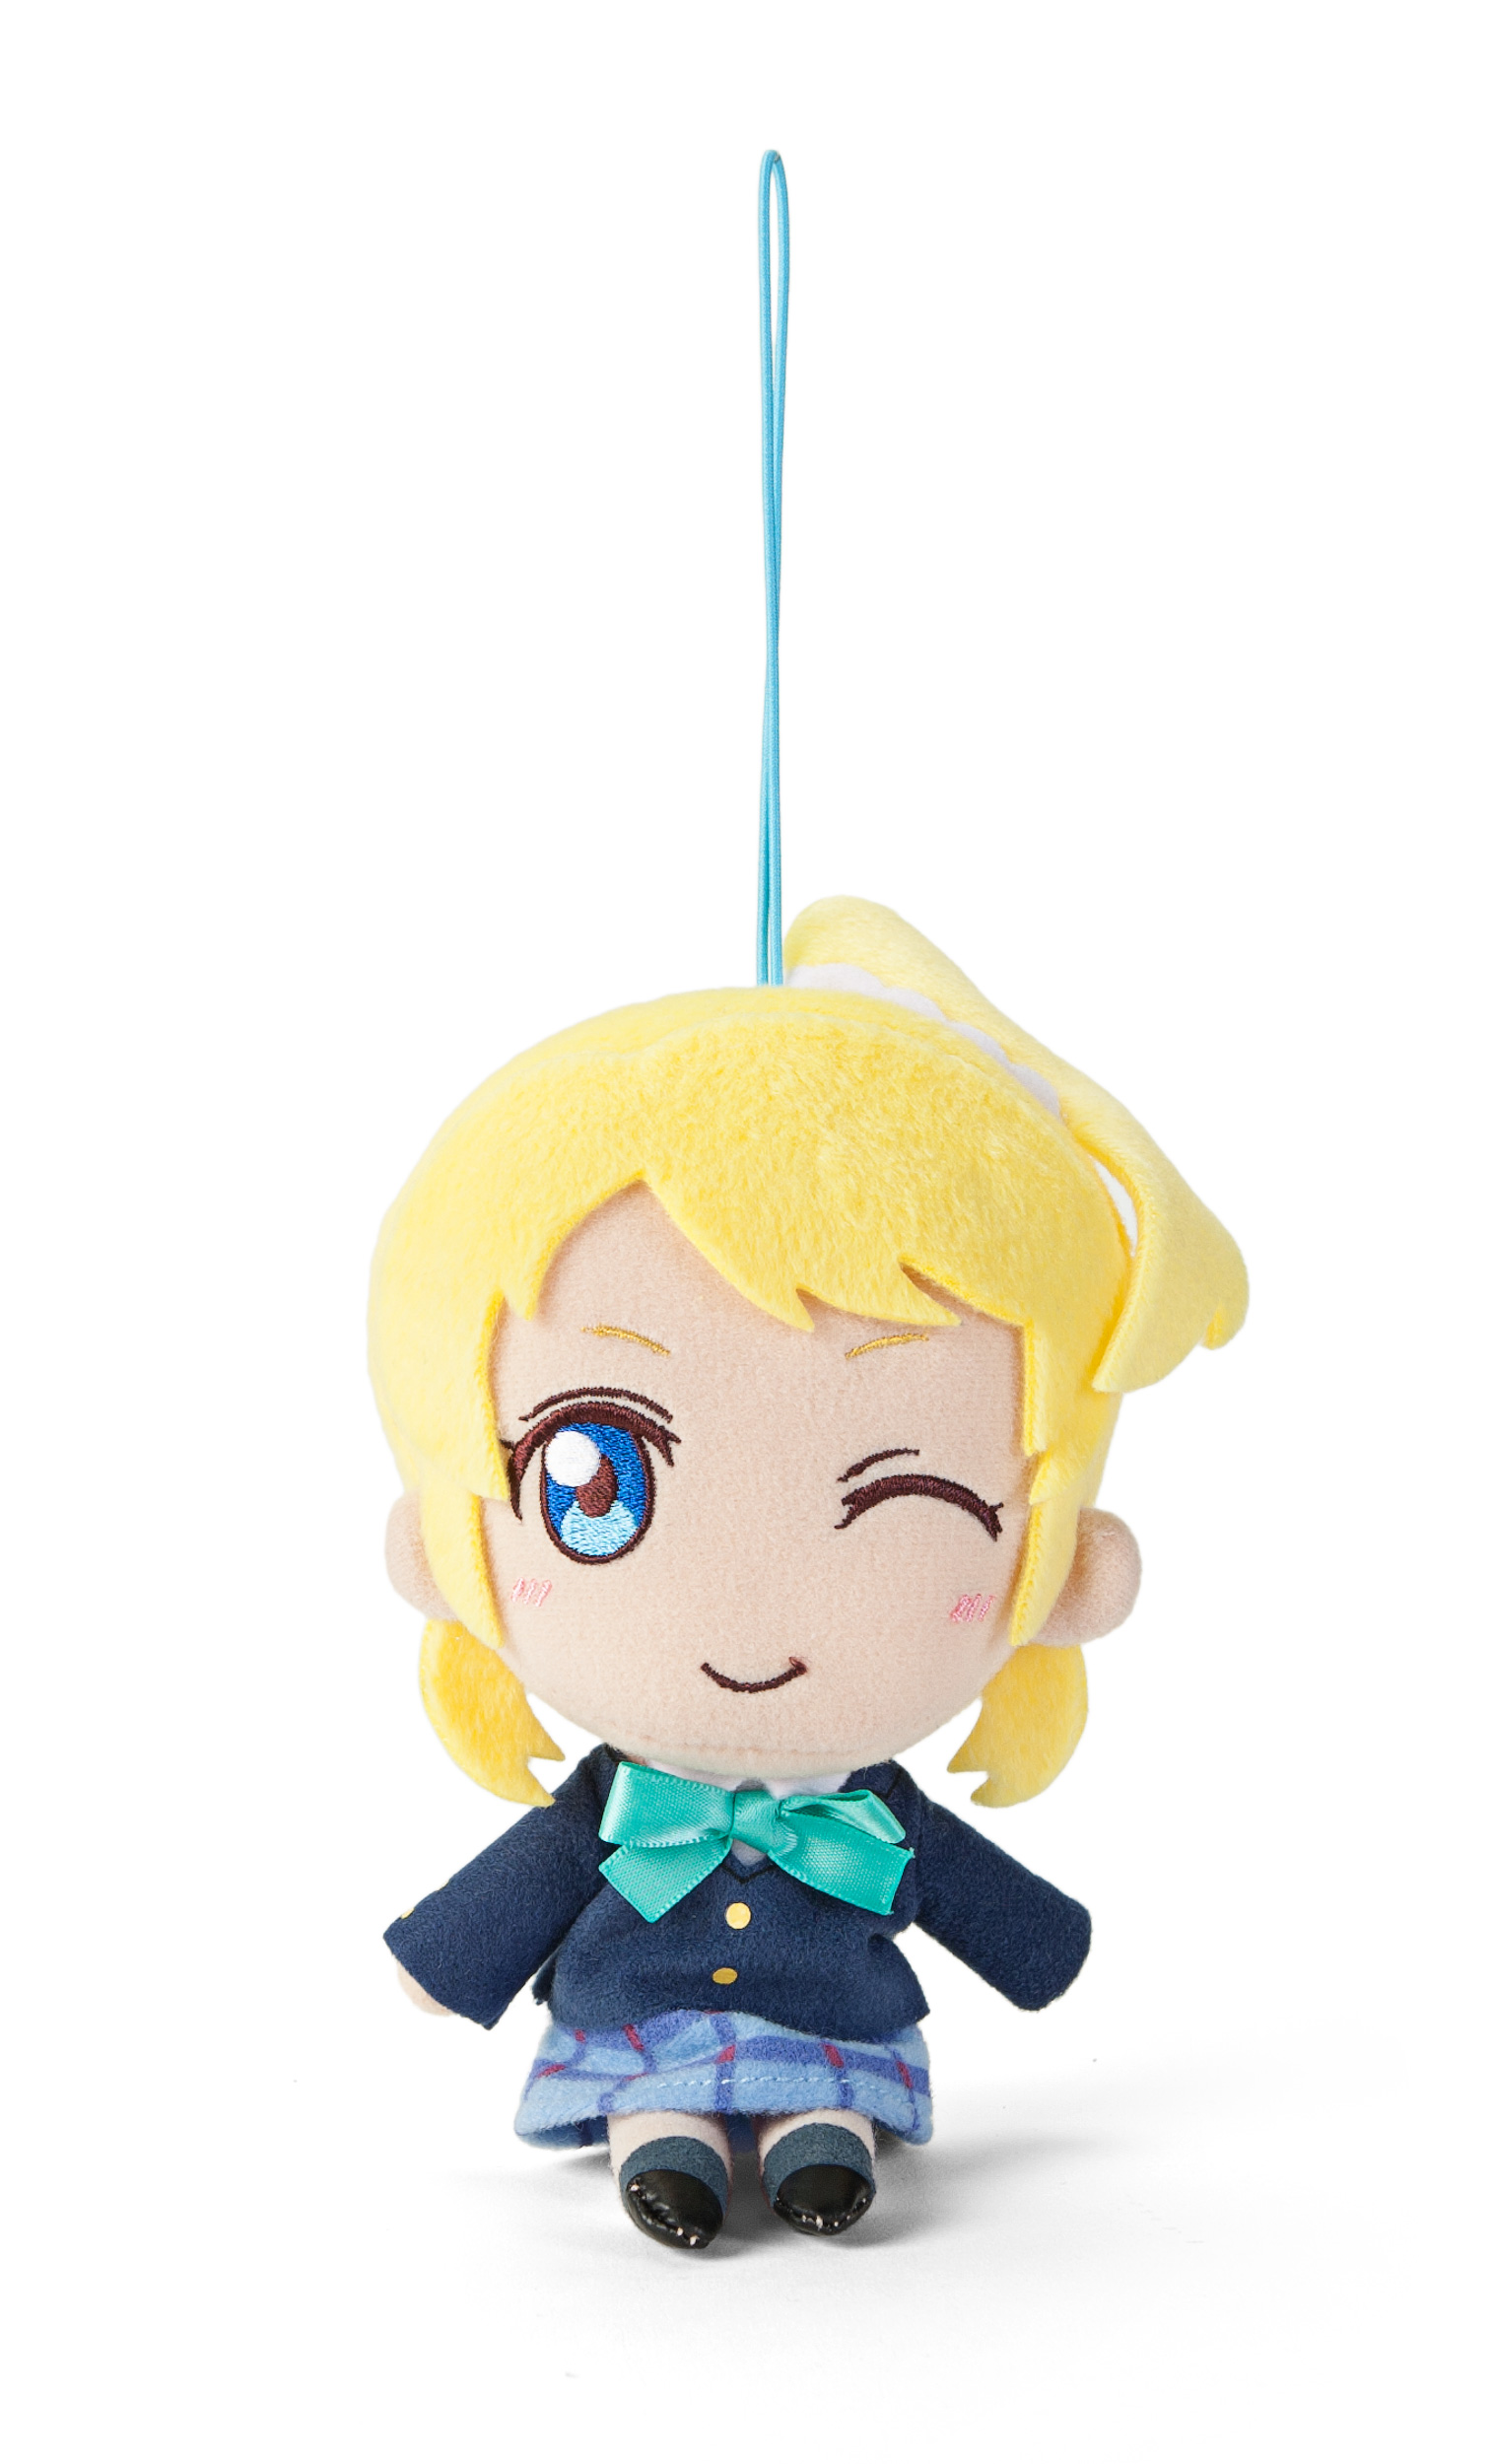 Details about Love Live! School Idol Project Ayase Eli Nico Plush Toy